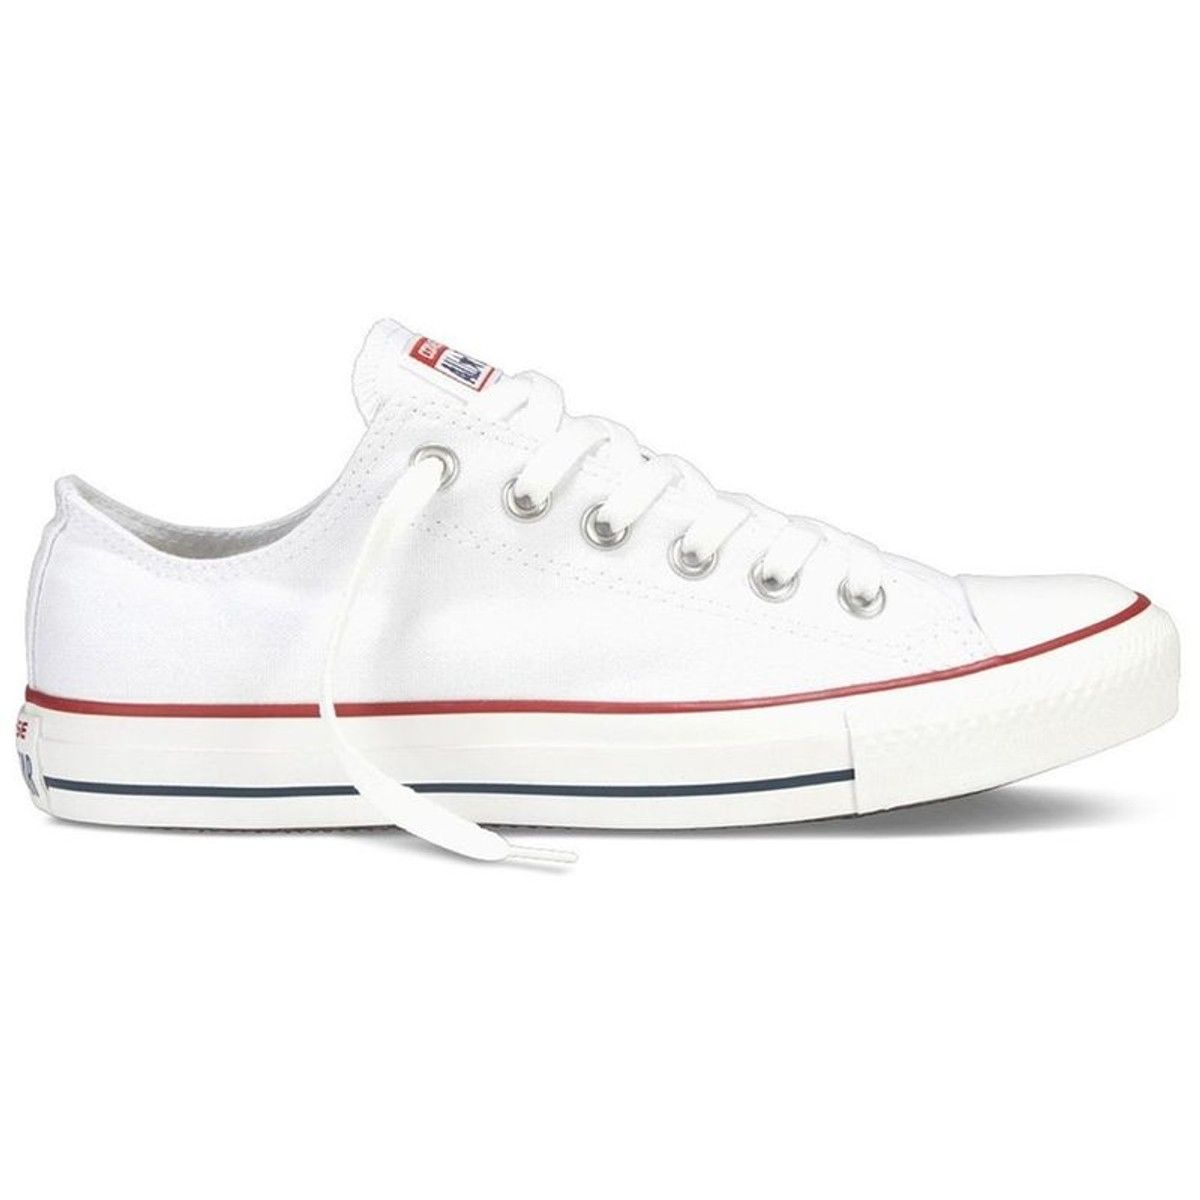 basket toile blanche style converse